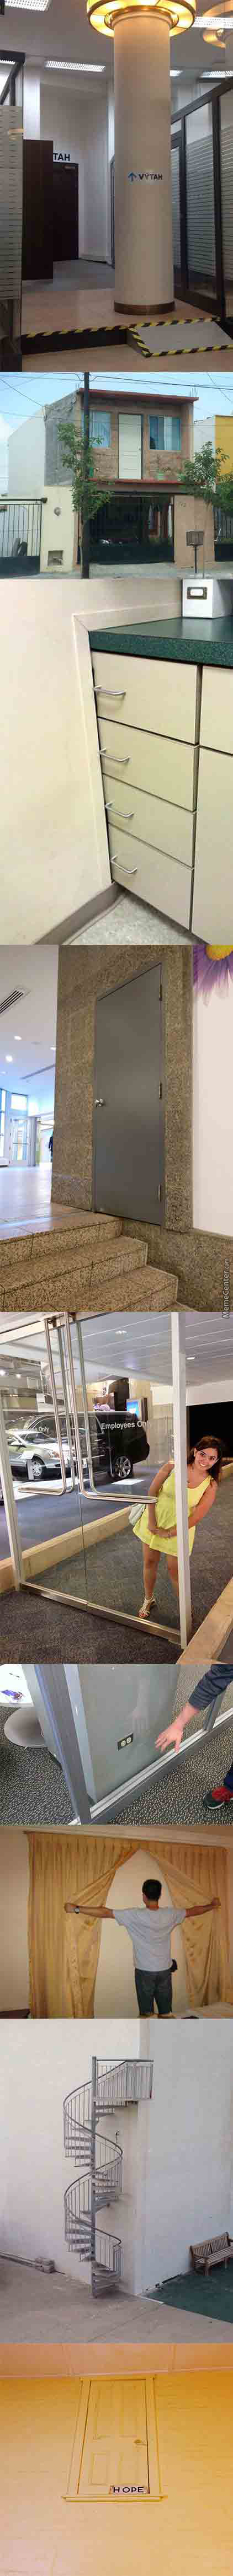 Funny Architectural Mishaps #3